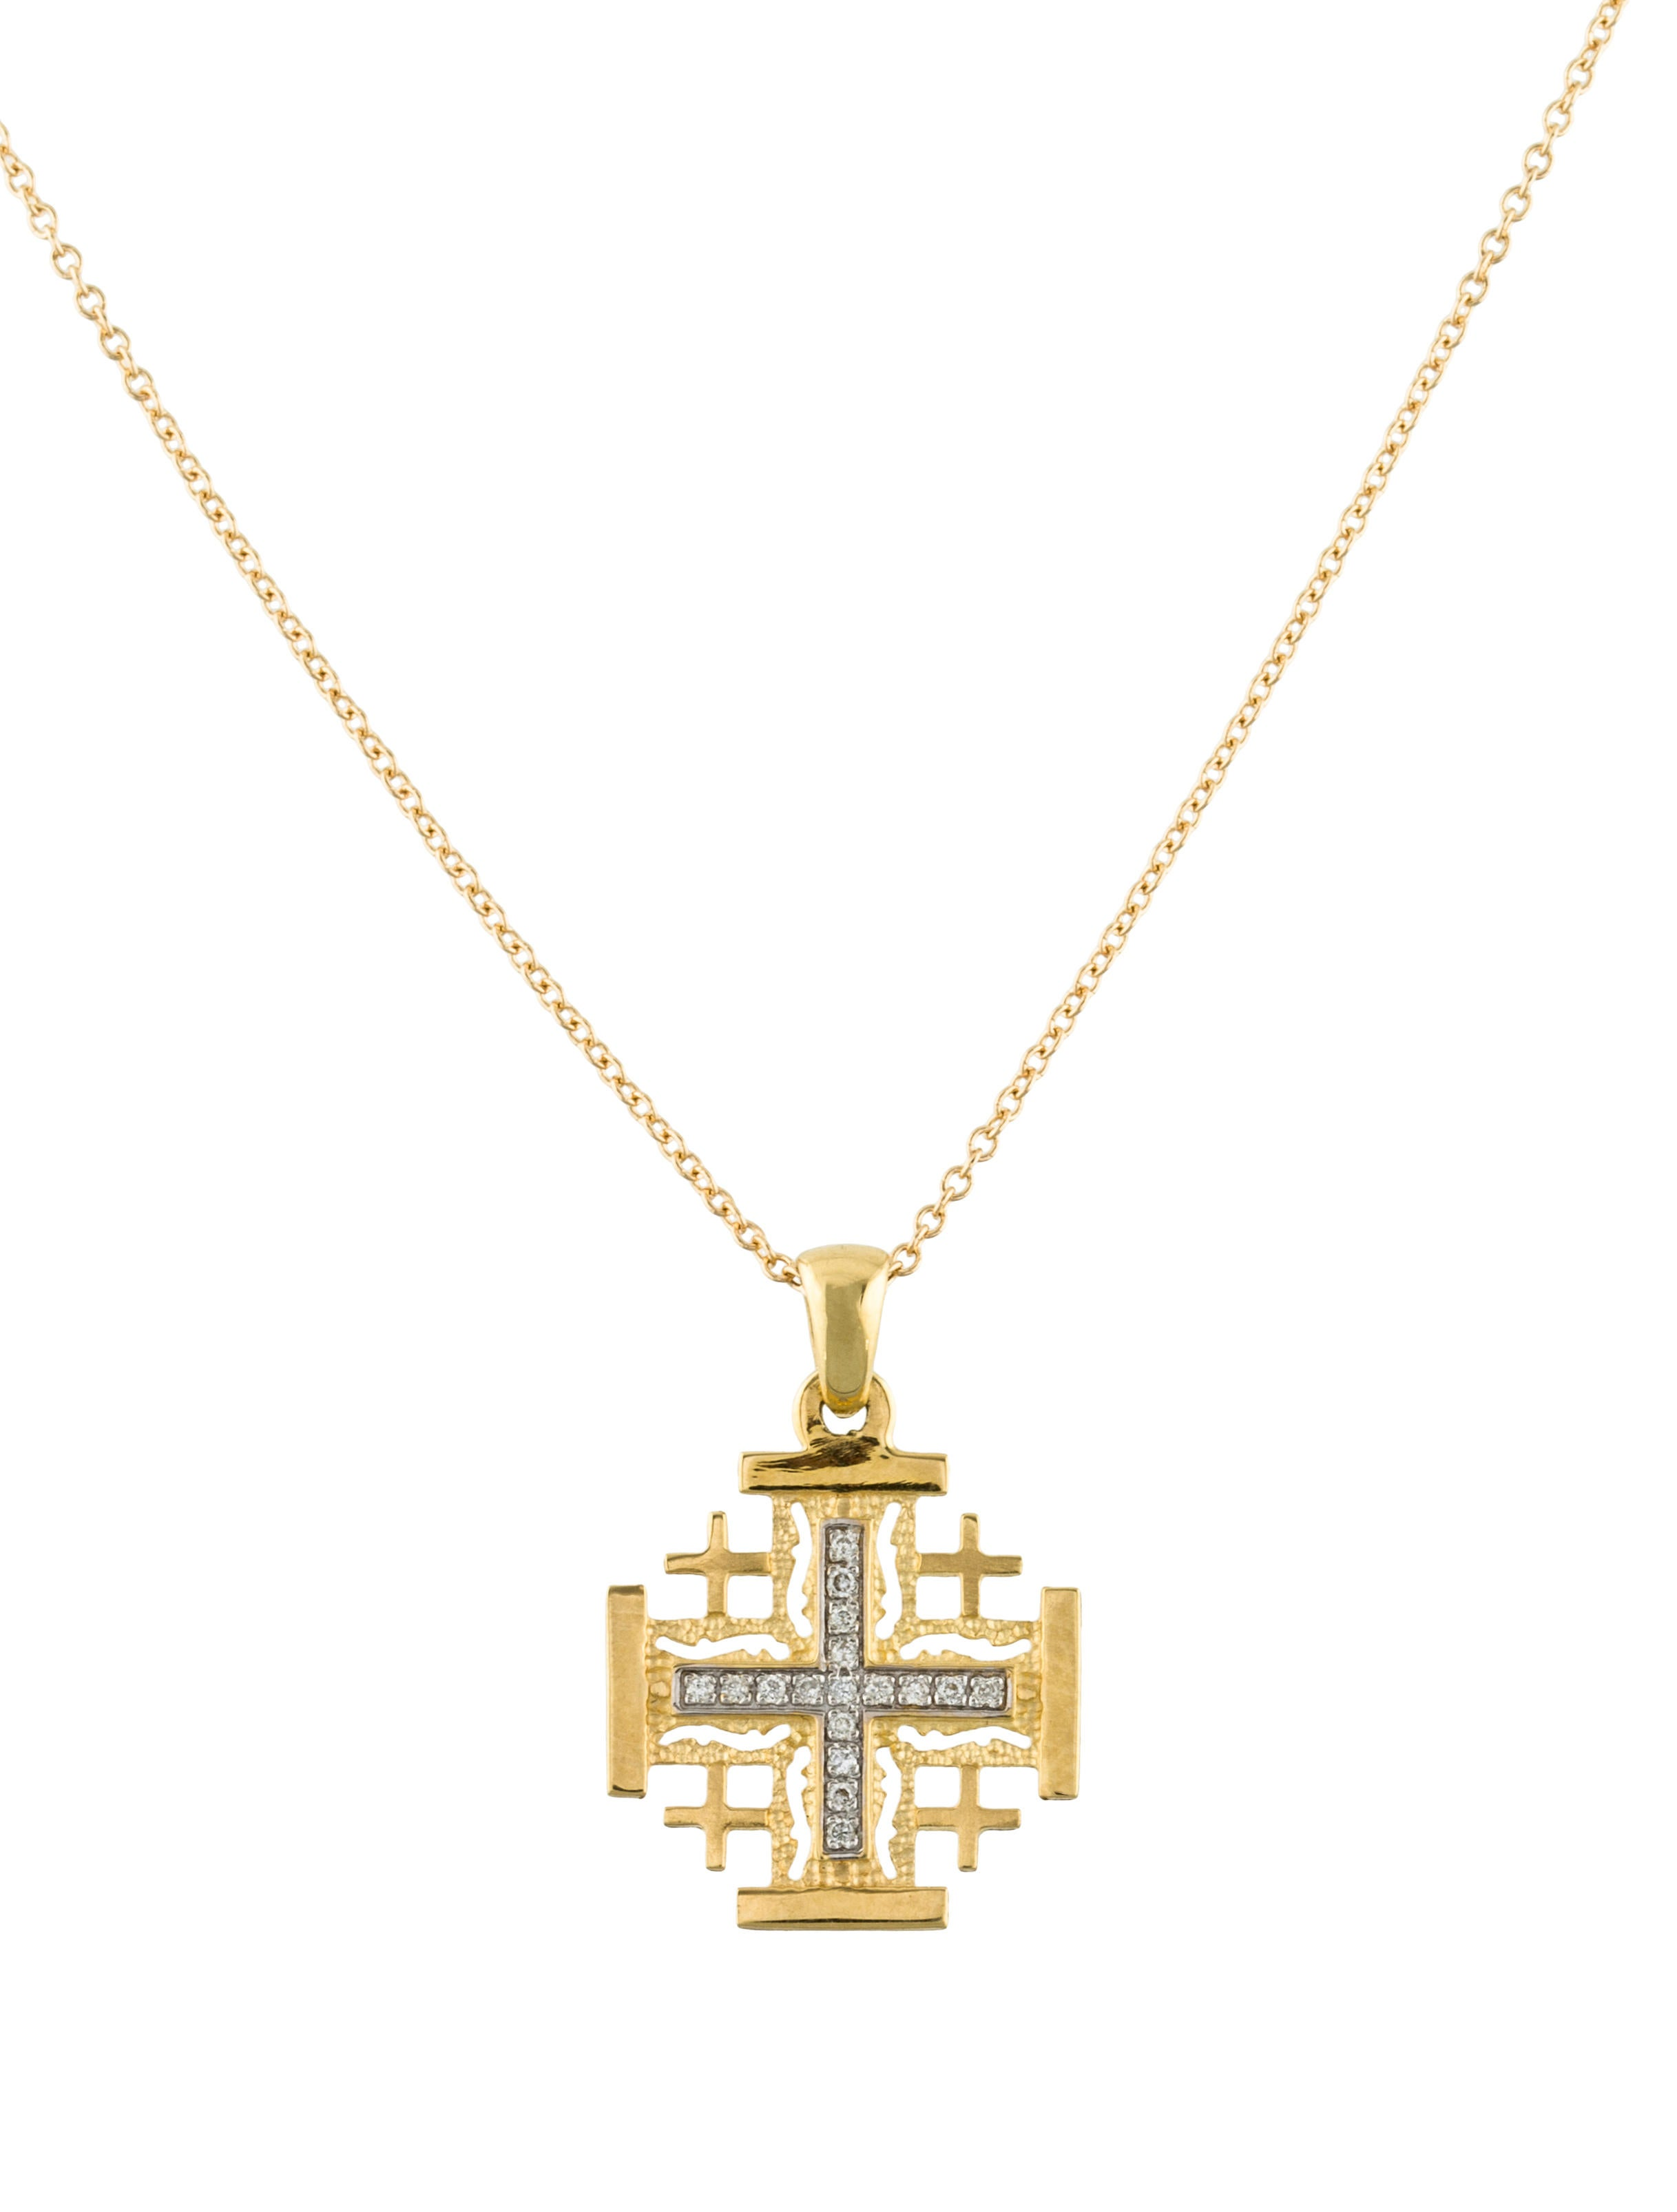 necklaces cross jerusalem pendant enlarged reiss jewelry necklace products i